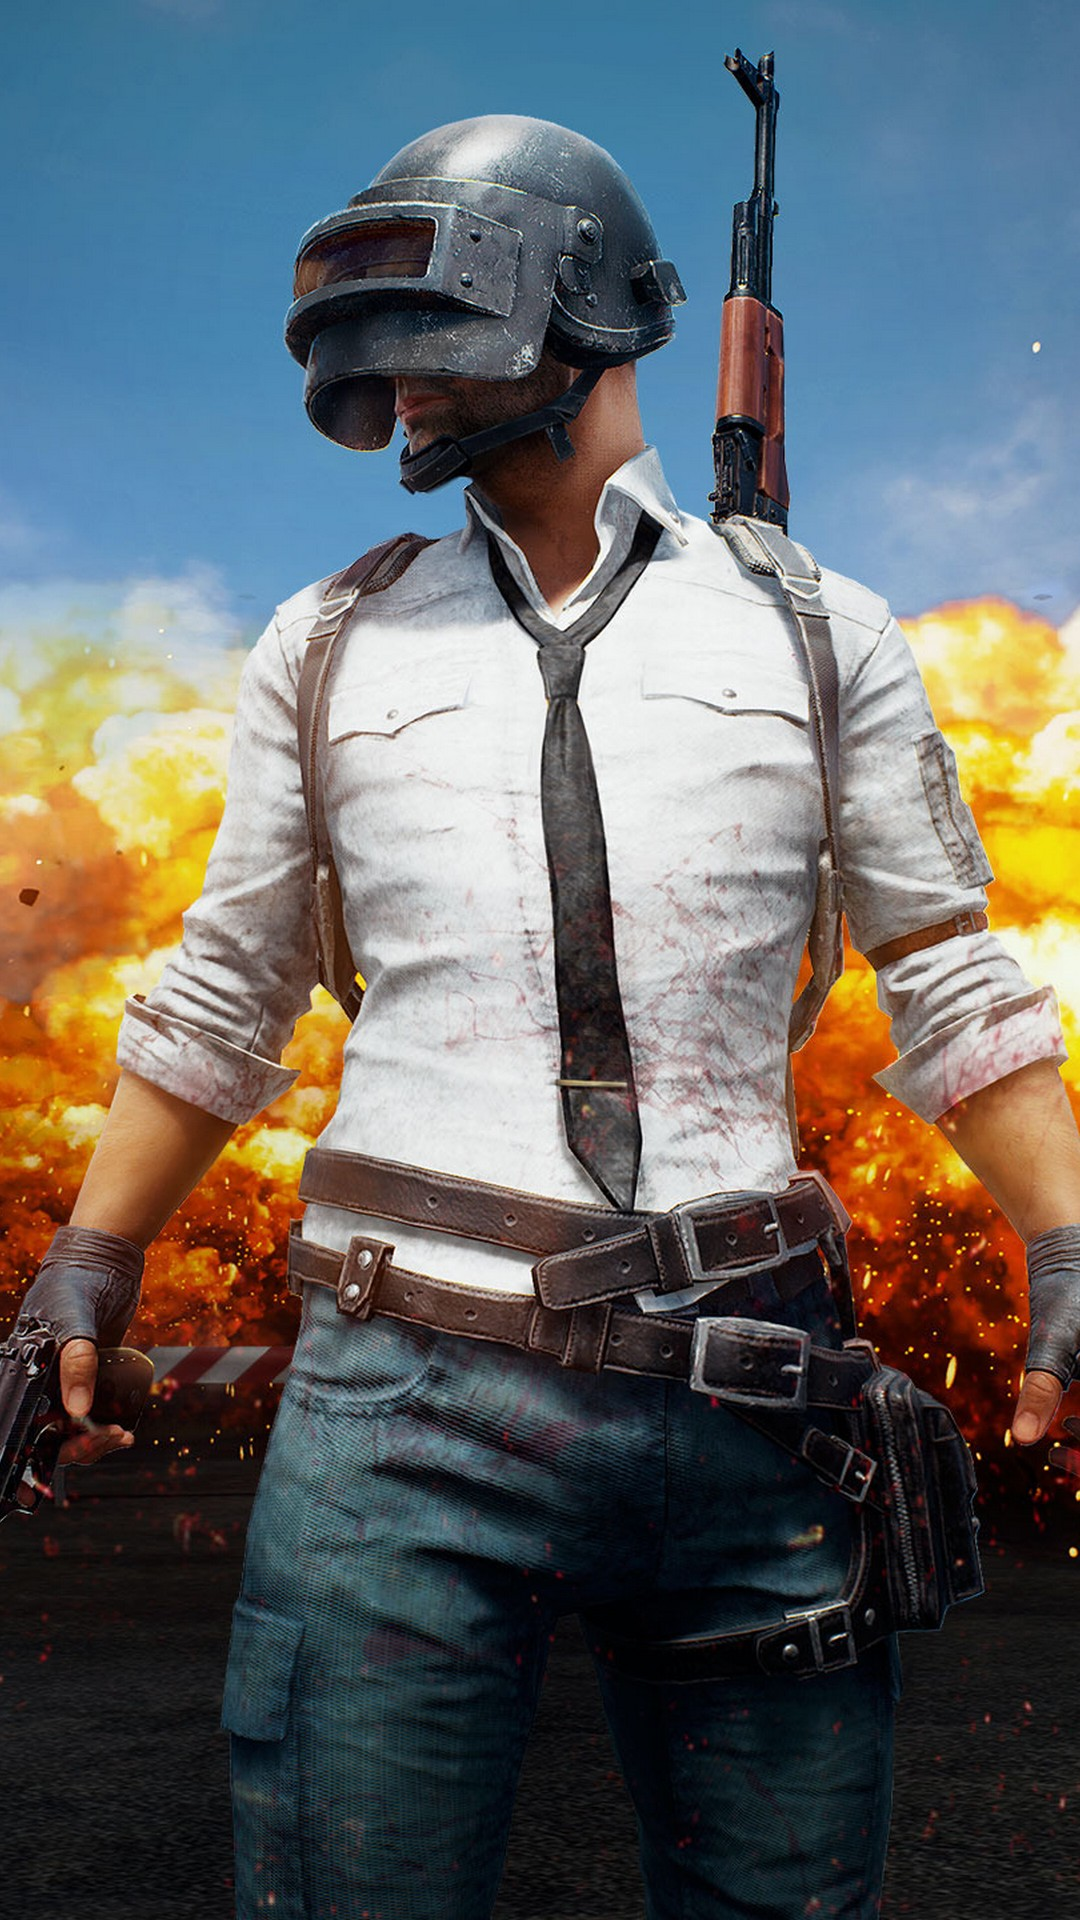 iPhone Wallpaper HD PUBG Mobile 2020 Cute Wallpapers 1080x1920